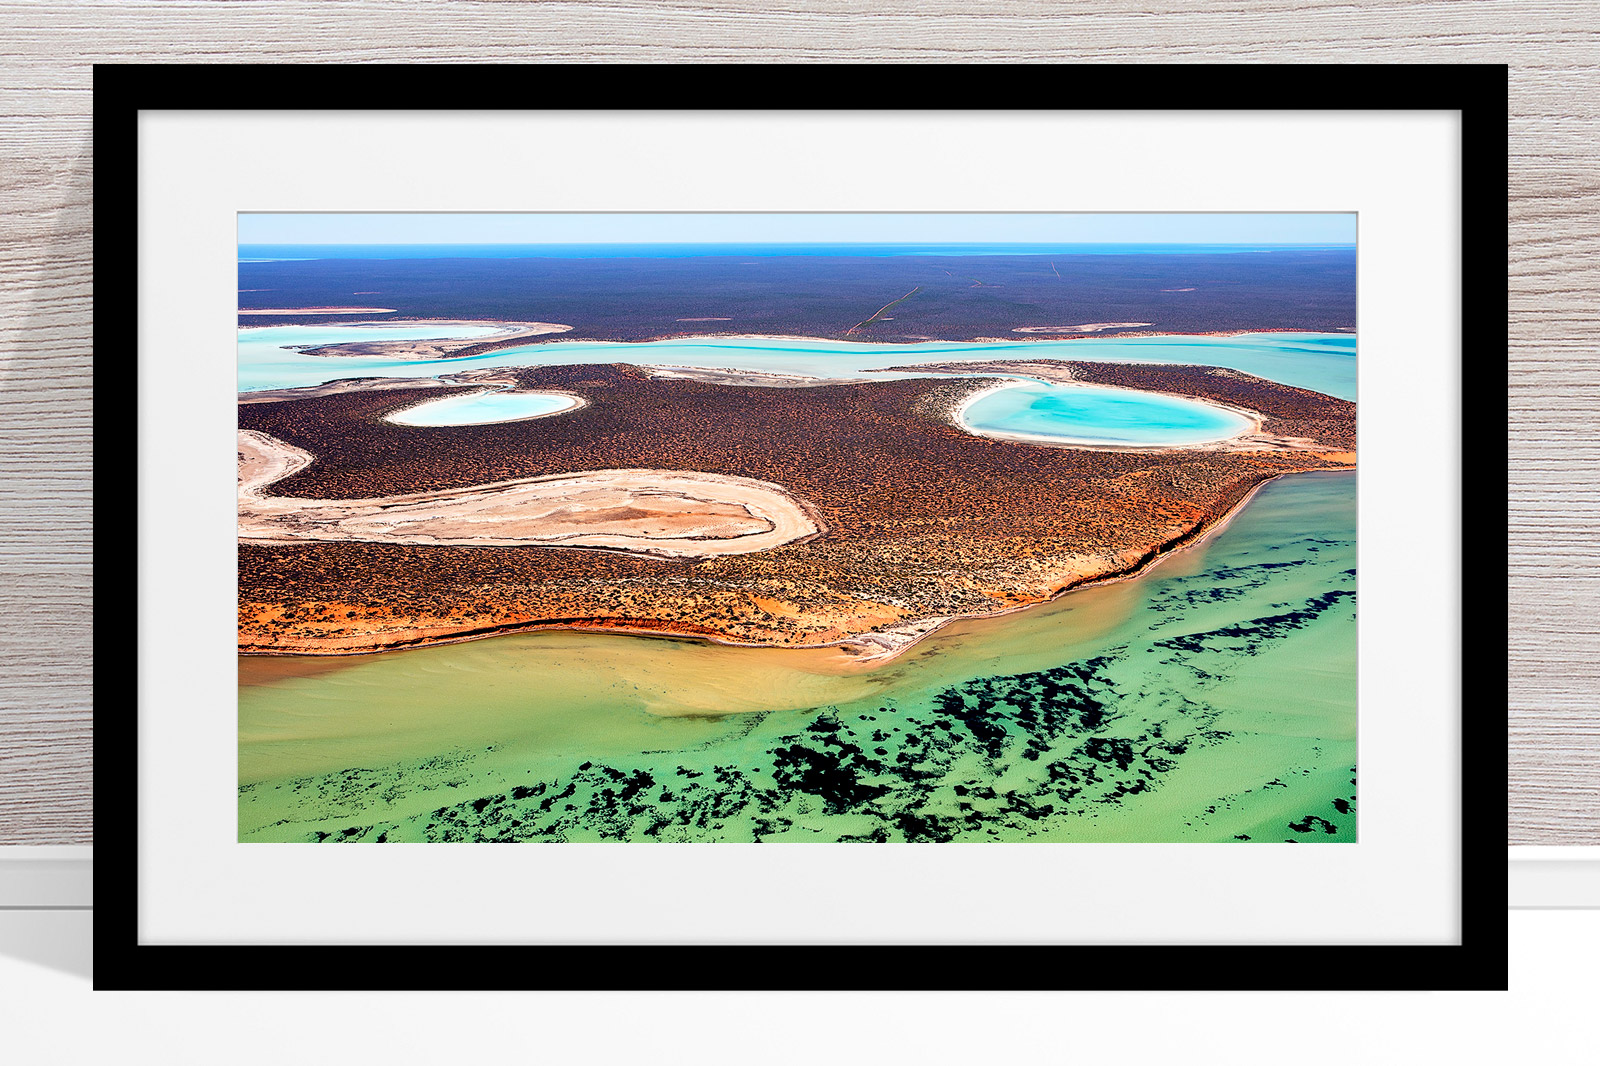 019 - Jason Mazur - 'Big Lagoon, Shark Bay' Black Frame